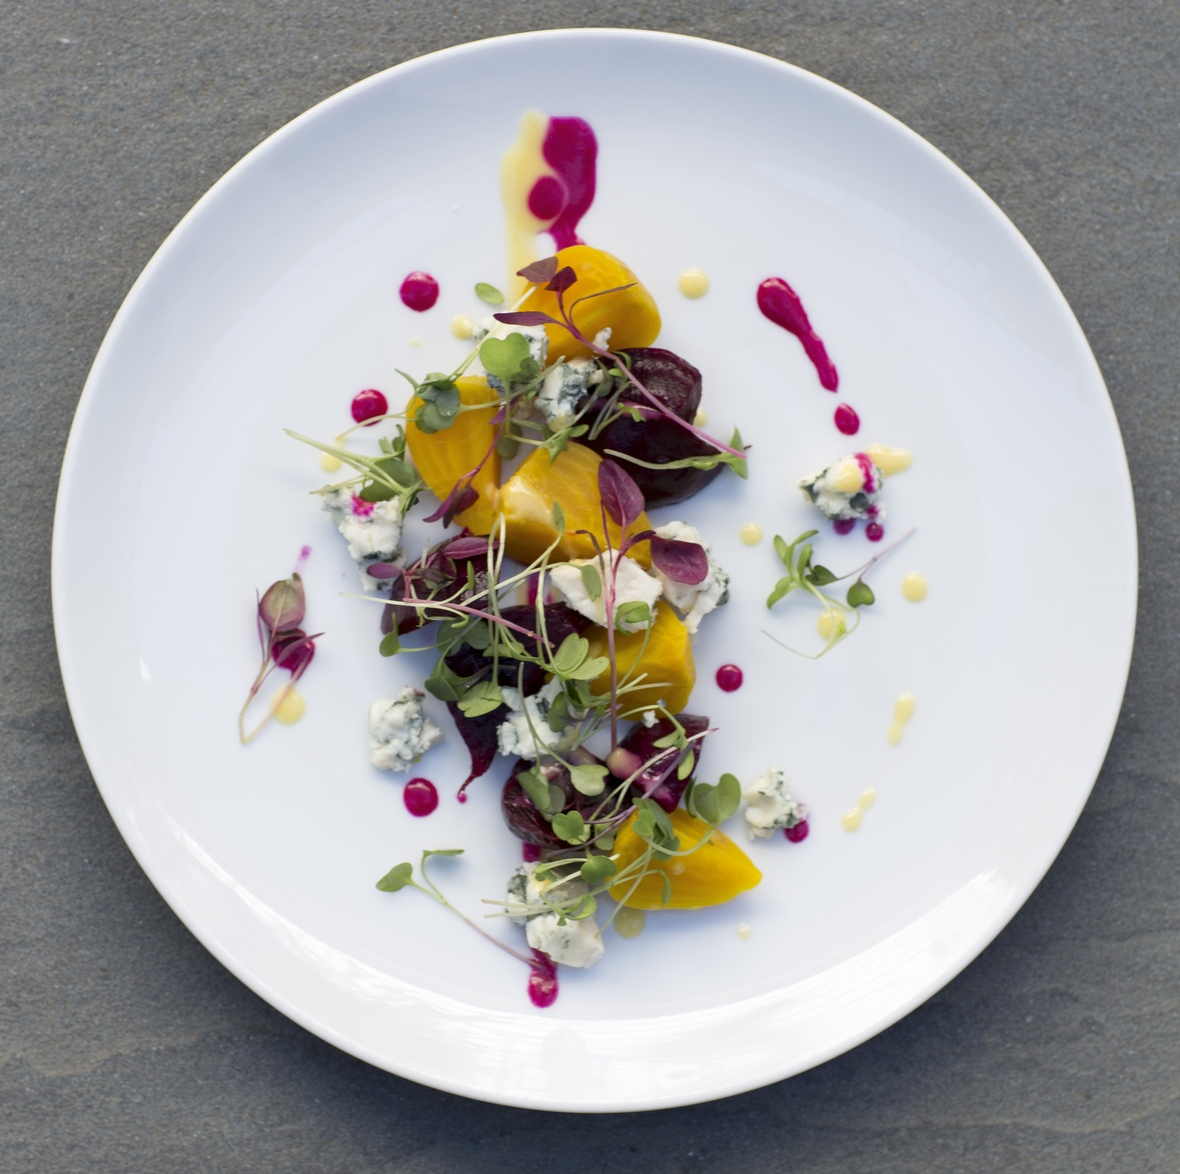 4-The-1770-House-Chef-Michael-Rozzi-Red-Golden-Baby-Beets-Salad-Roquefort-Local-Cress-Photo-Credit-Robyn-Lea